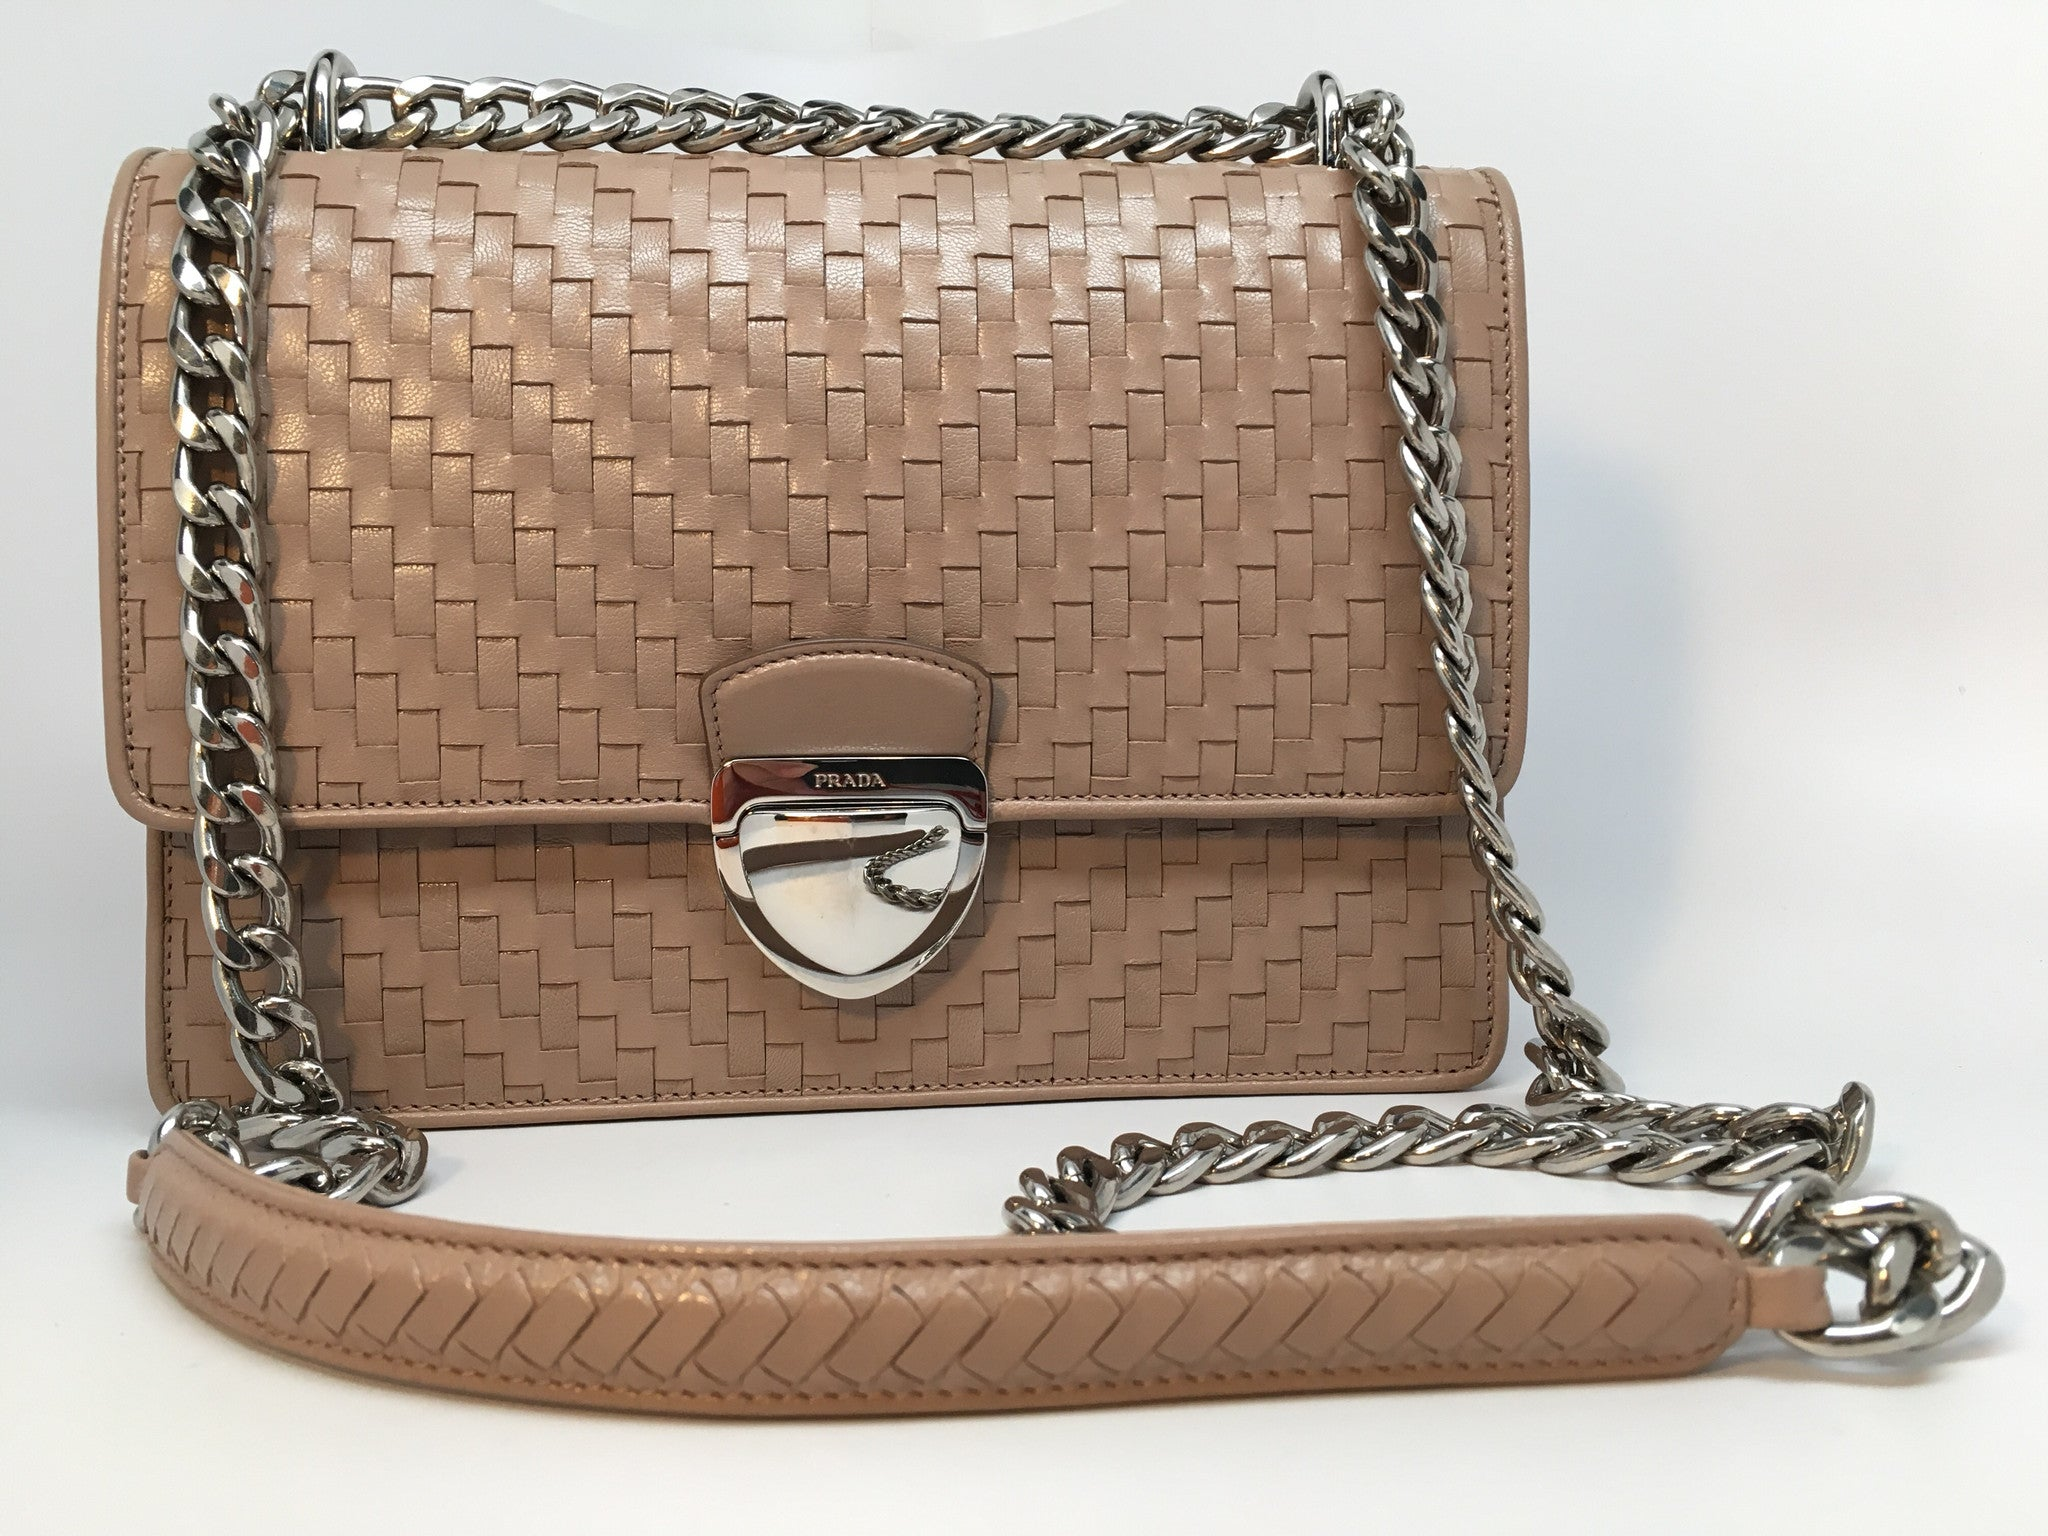 59f58f2aa779 PRADA MADRAS WOVEN LEATHER CHAIN BAG – Hebster Boutique